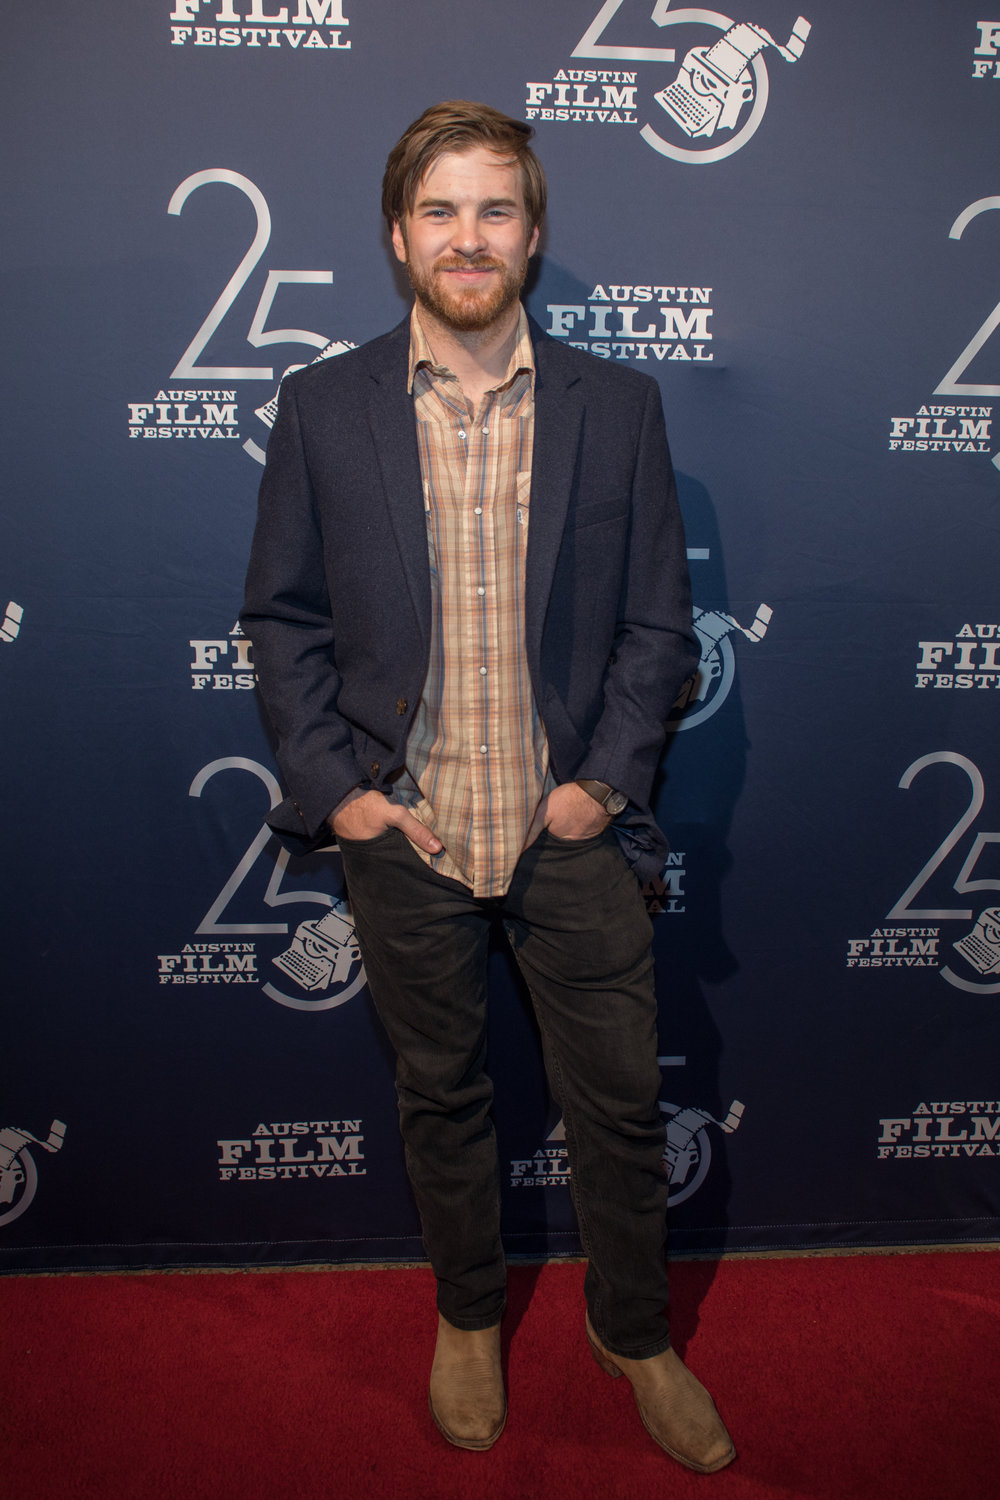 Tyler Russell at the 2018 Austin Film Festival.